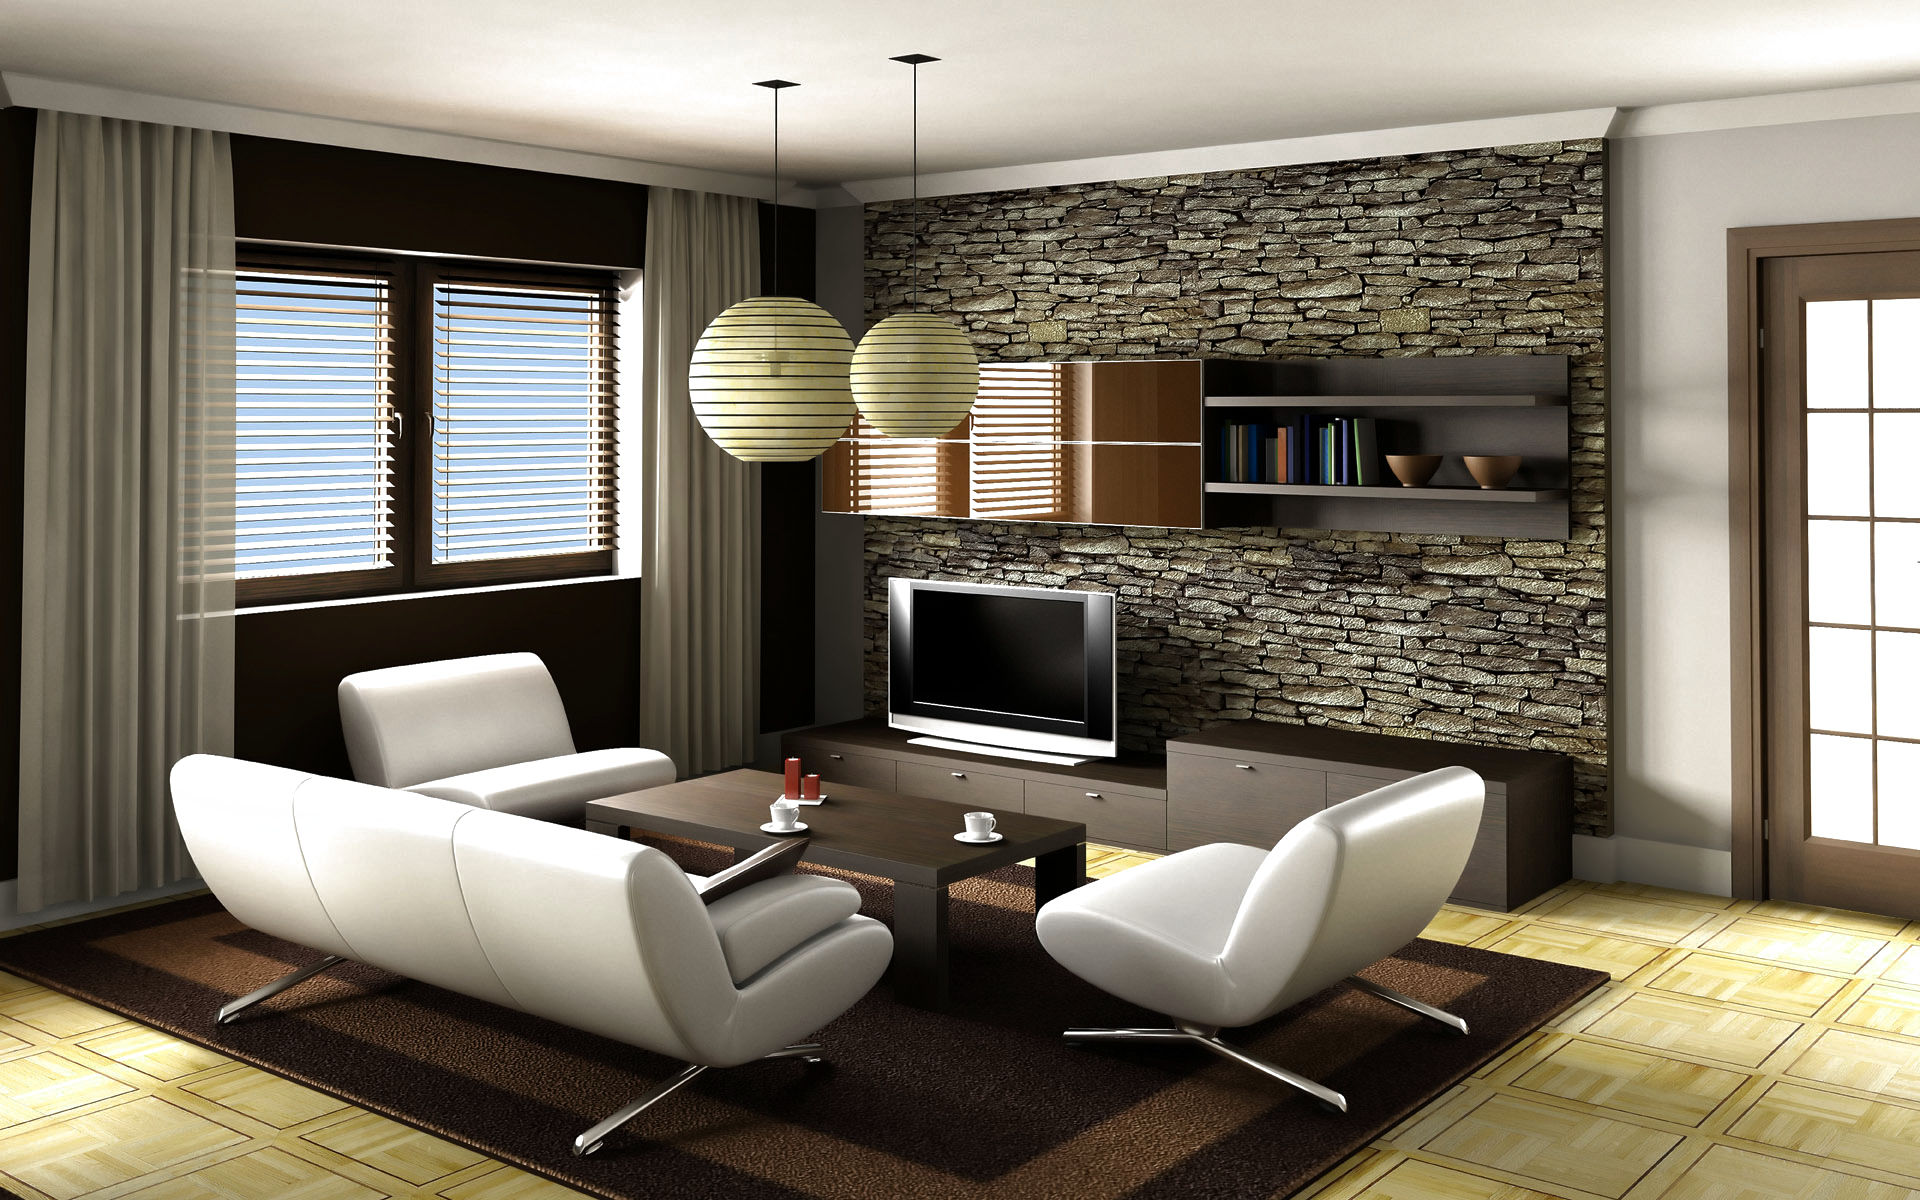 16 modern living room furniture ideas design hgnv com for Modern apartment furniture ideas